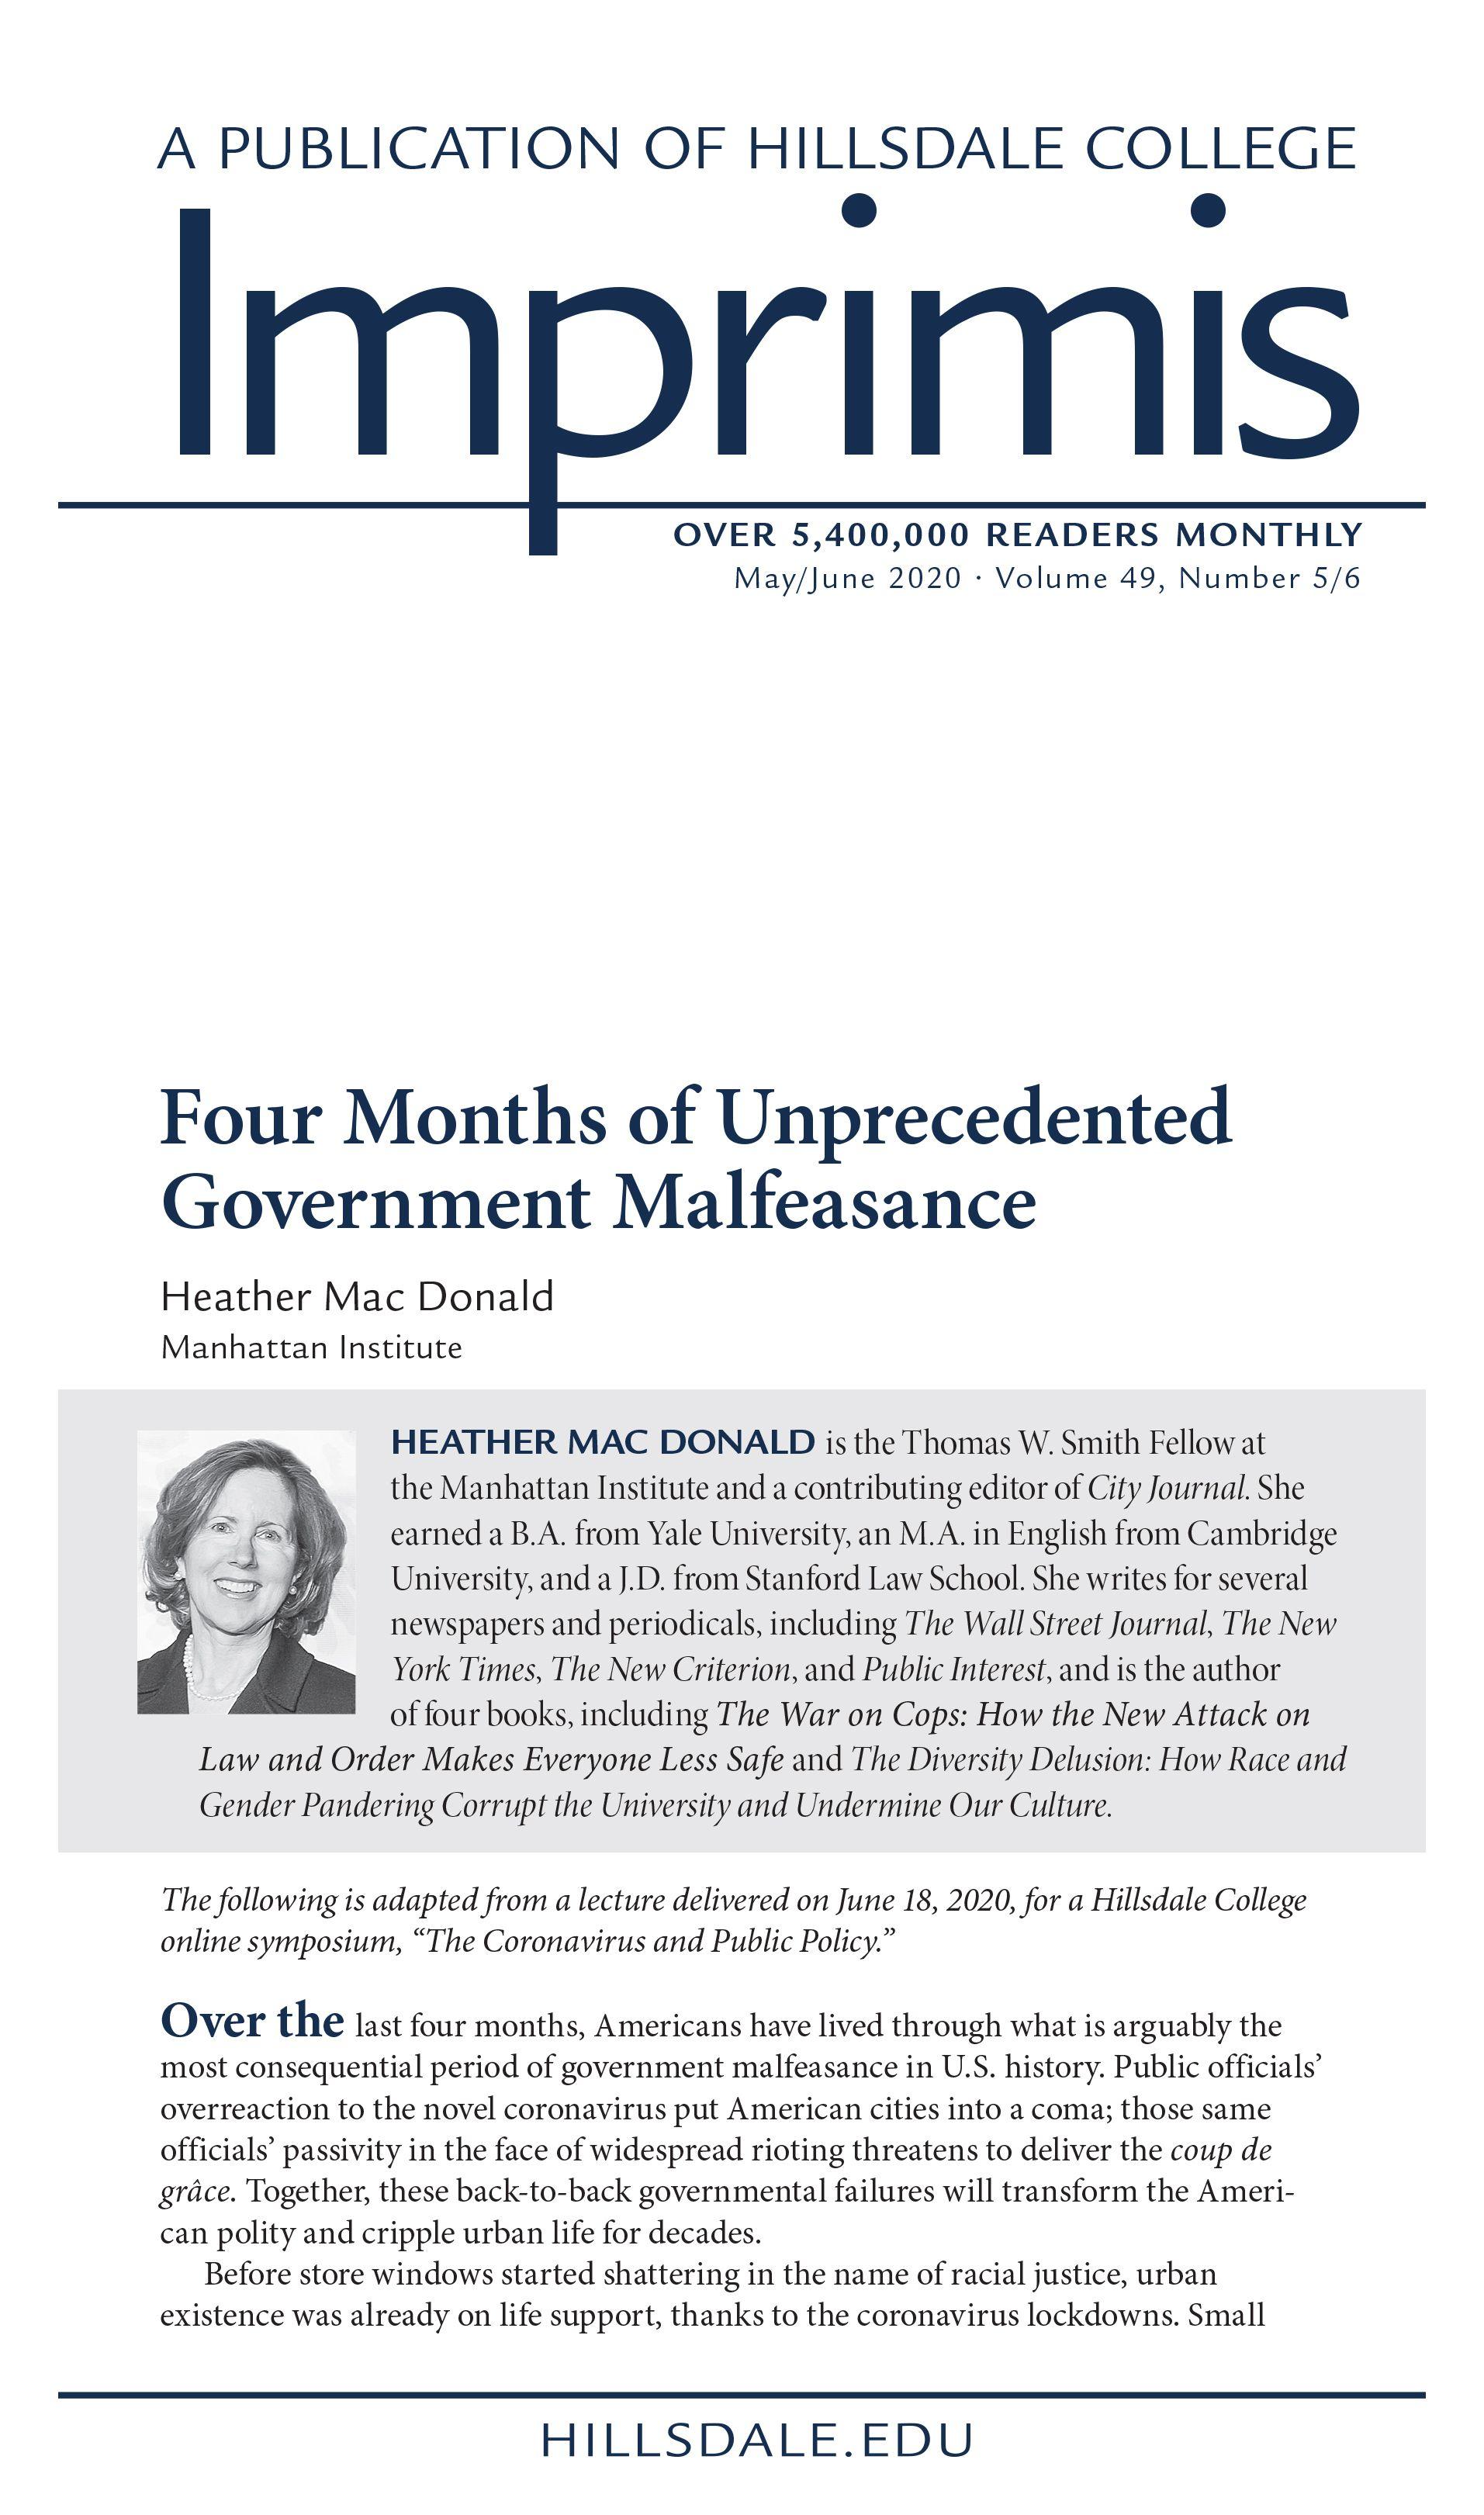 Provocative Piece by Economist Heather Mac Donald: Four Months of Unprecedented Government Malfeasance